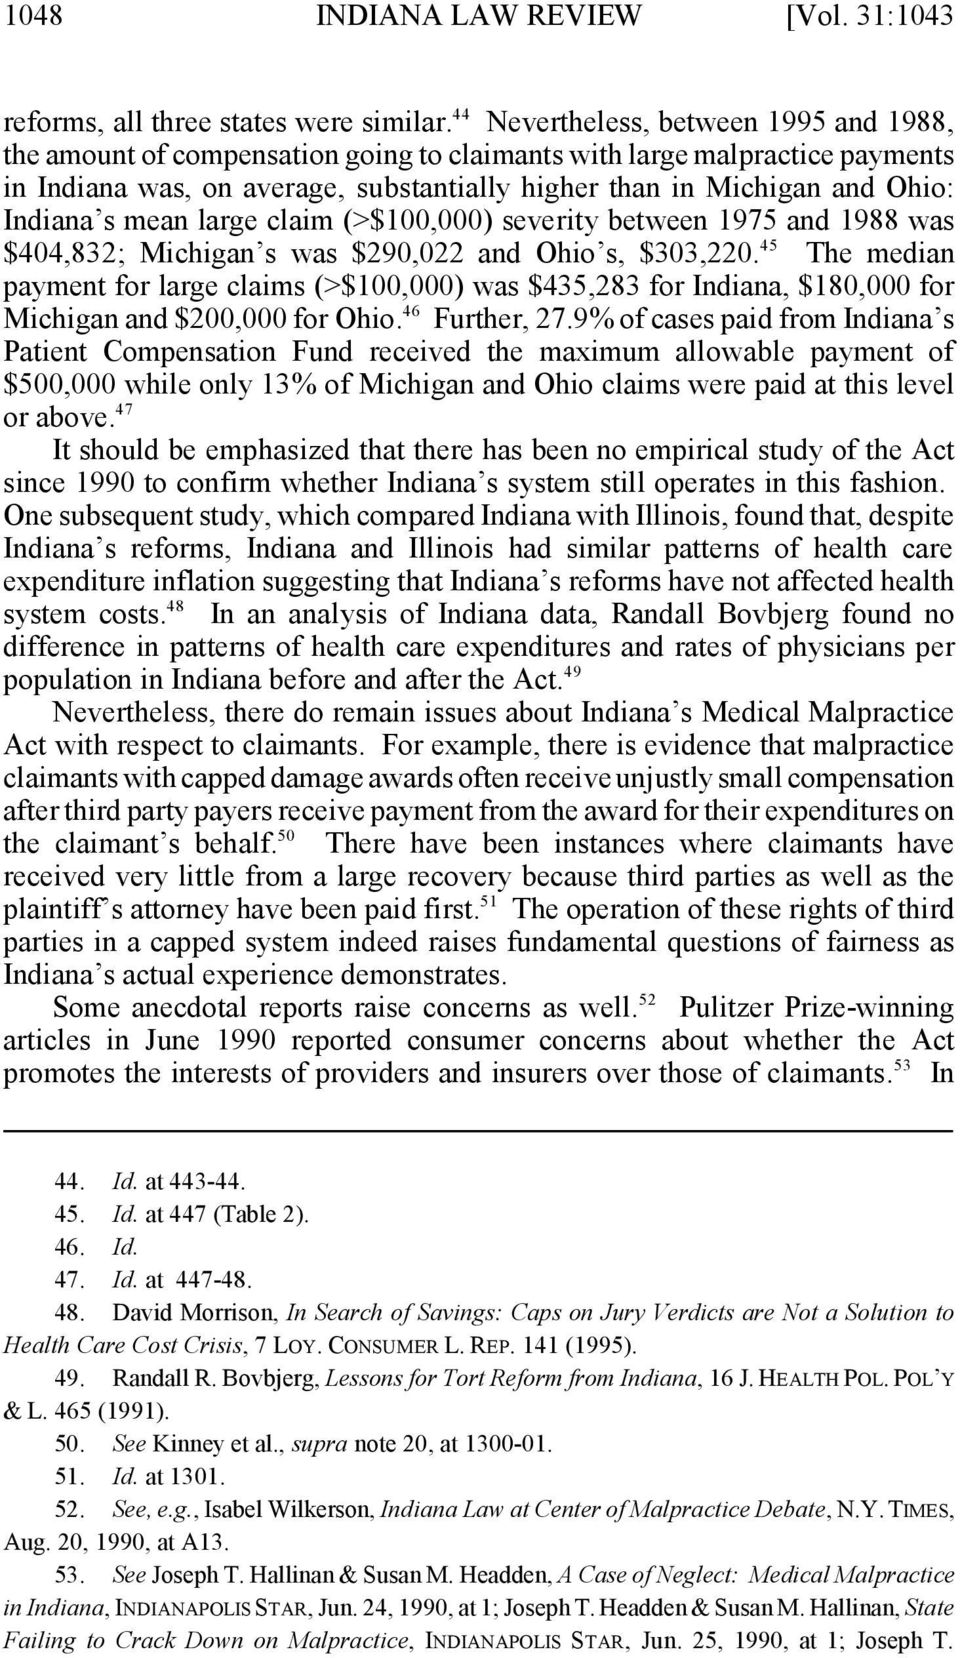 s mean large claim (>$100,000) severity between 1975 and 1988 was 45 $404,832; Michigan s was $290,022 and Ohio s, $303,220.